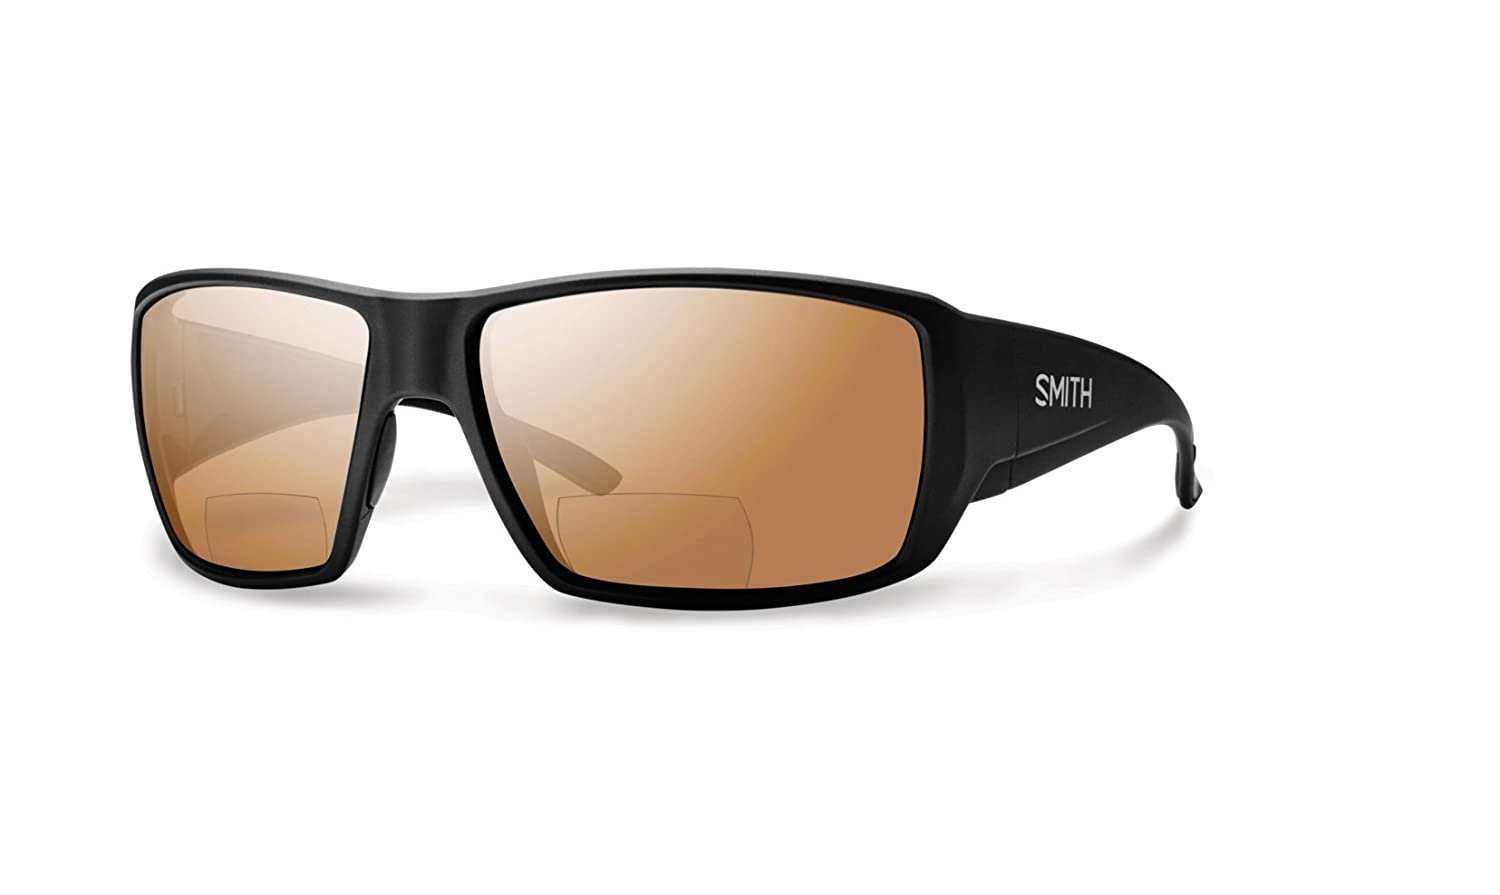 fd93aabb8 Smith Guides Choice Bifocal Polarized Sunglasses - Men's Matte Black/Copper  Mirror 2.50, One Size at Amazon Men's Clothing store: